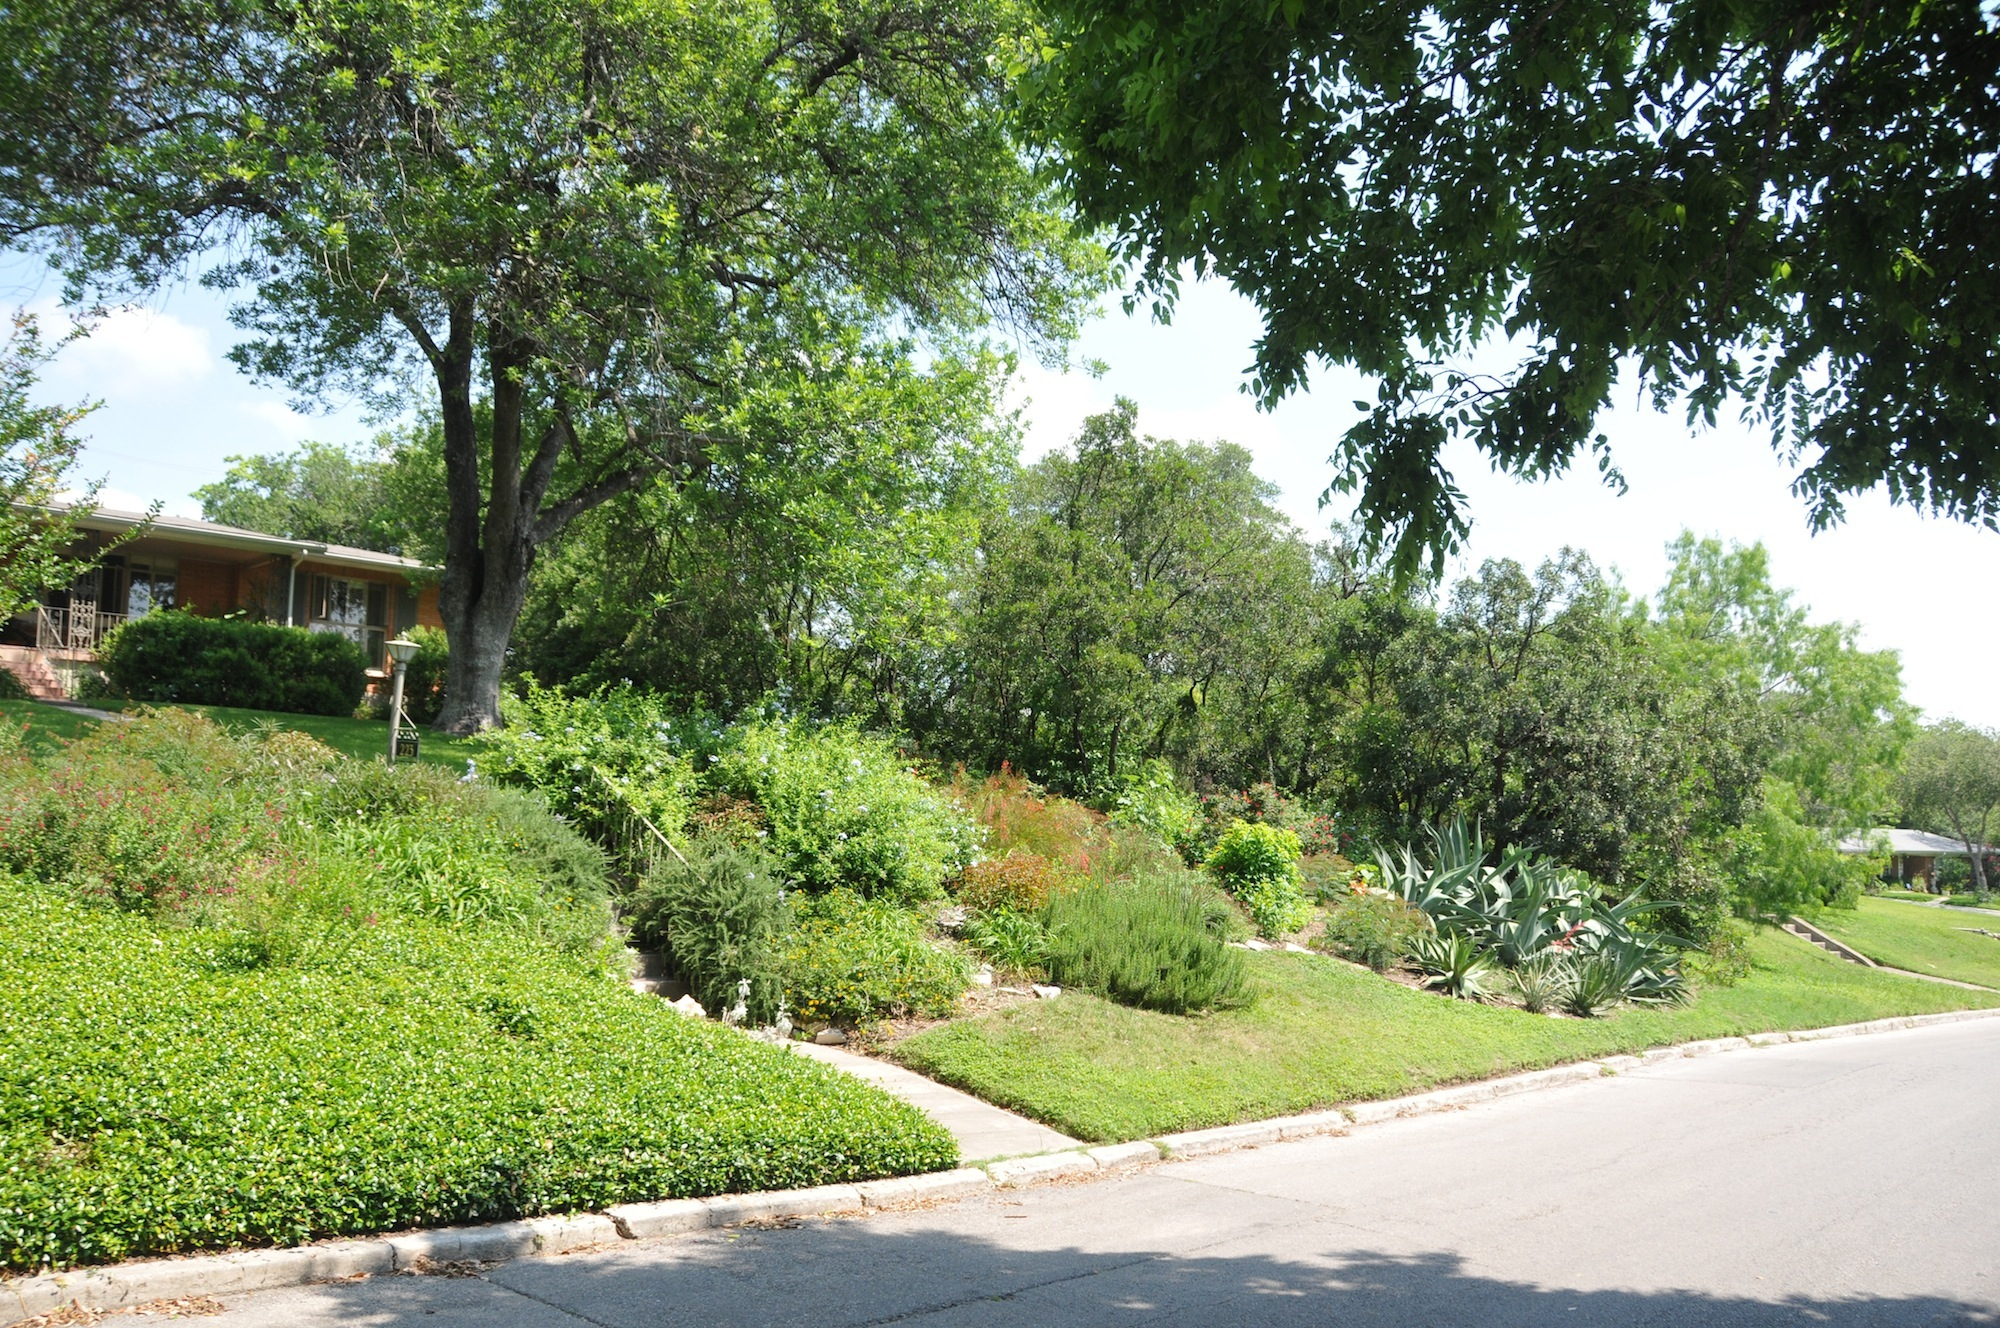 Lush landscaping, common in Bel Meade (unfortunately not my yard).